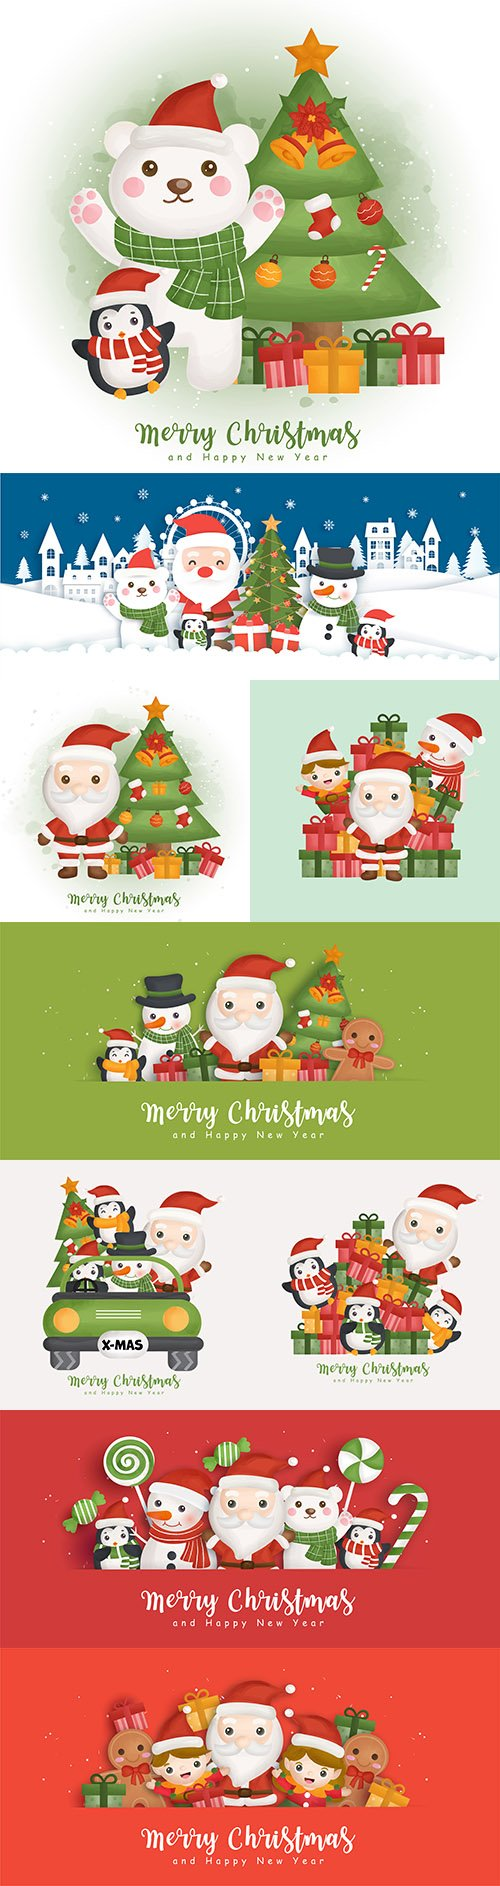 Merry Christmas background with Santa Claus elements and friends